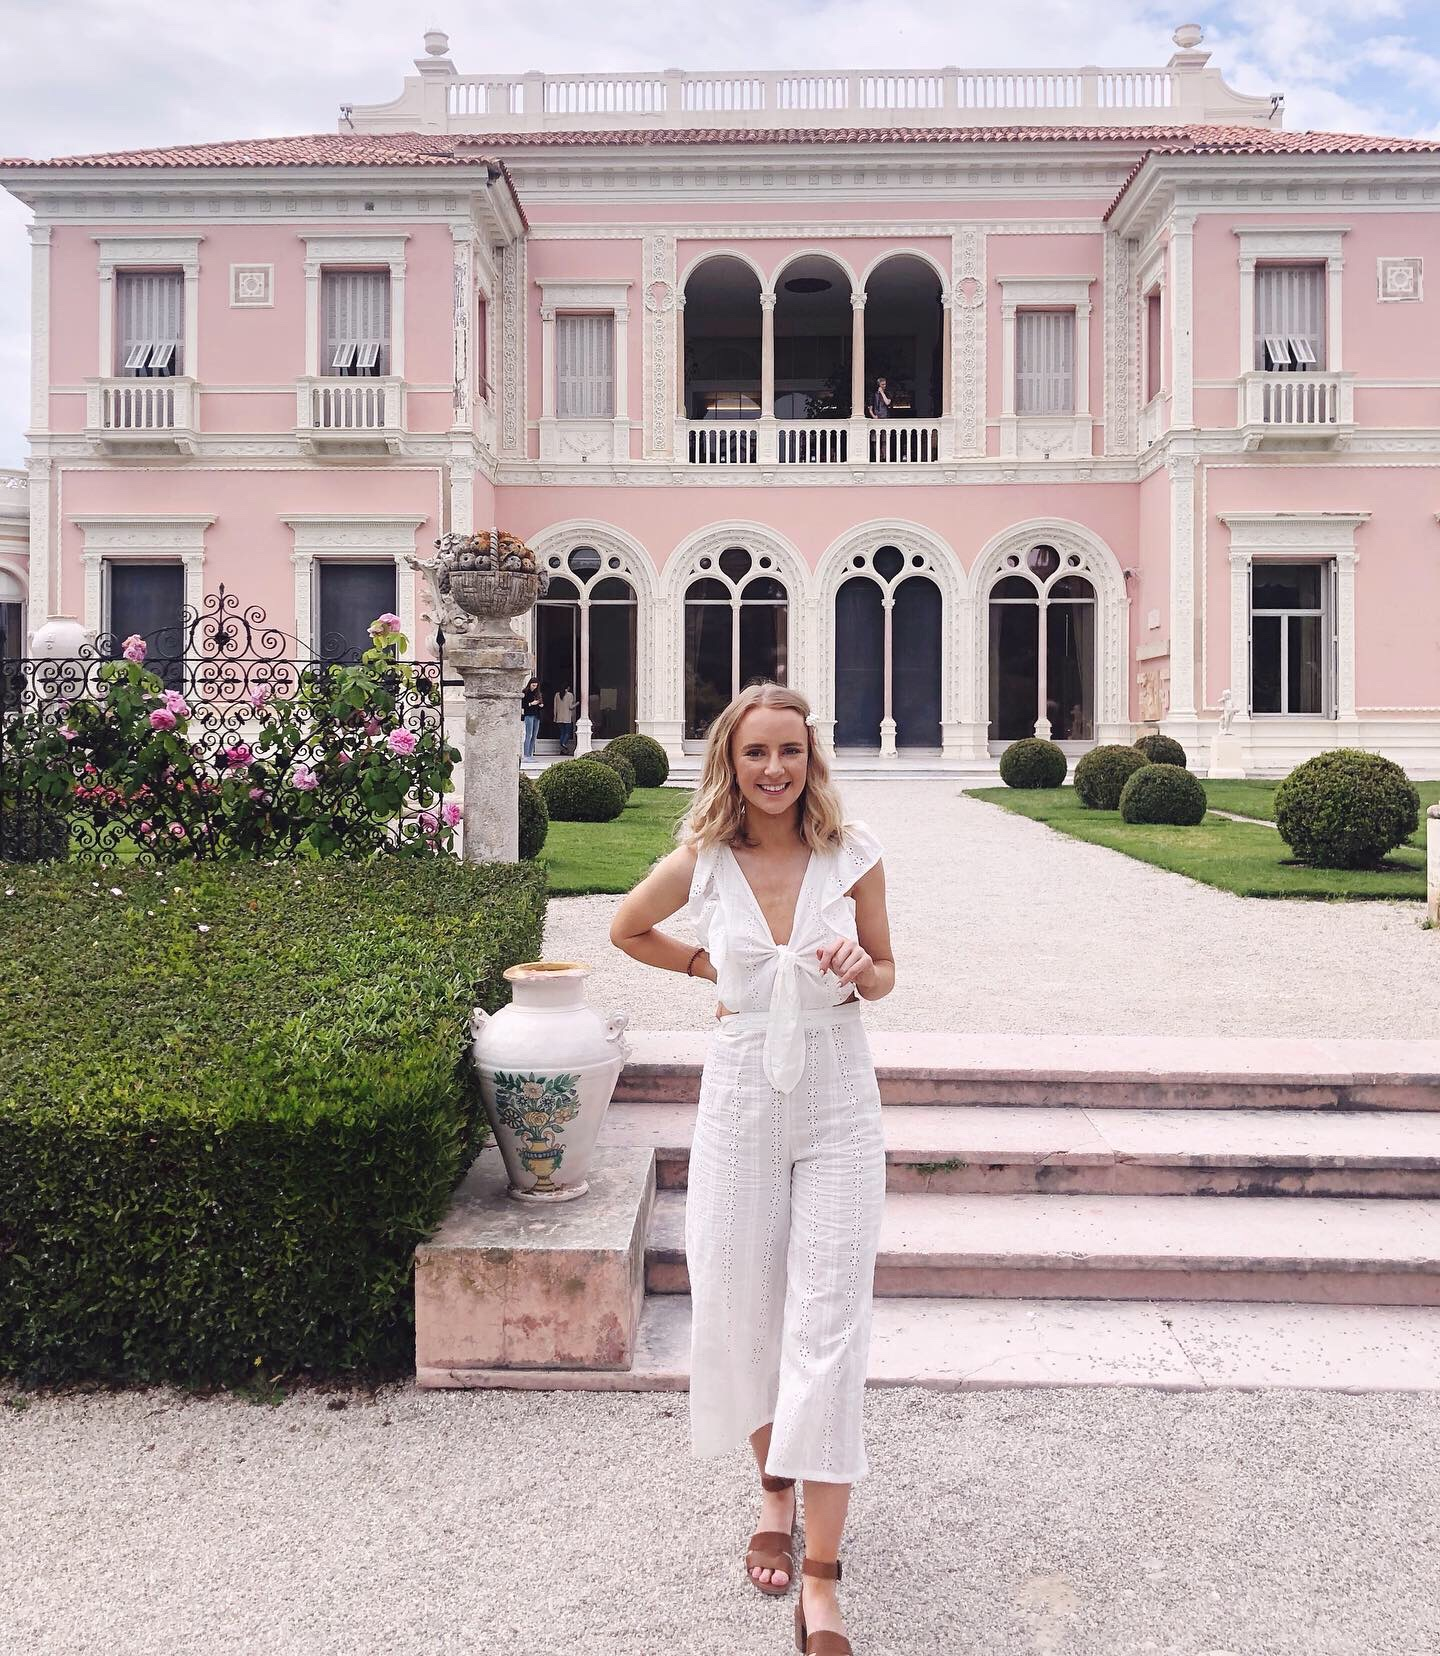 Friends In New York City :: Meet Emma - Associate Publicist by popular New York lifestyle blog, Live Laugh Linda: image of a woman standing in front of a pink building and wearing a white eyelet jumpsuit.